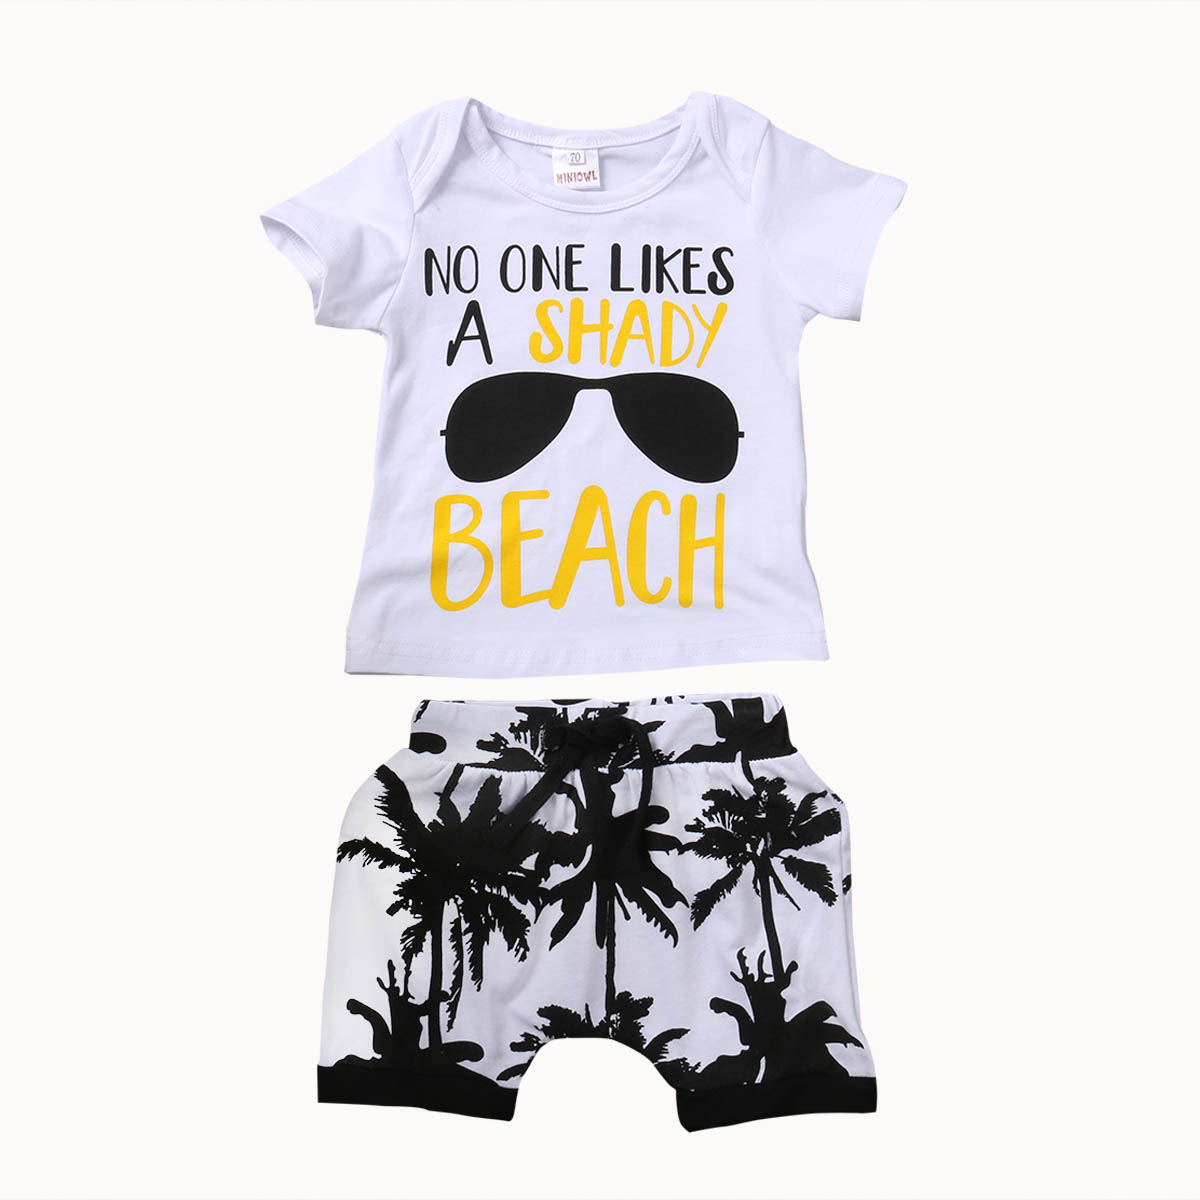 2PCS Toddler Kids Baby Boy Girl Clothes Set 2017 Summer Short Sleeve Cotton T-shirt Top+Shorts Hot Pant Outfit Children Clothing 2017 newborn baby boy clothes summer short sleeve mama s boy cotton t shirt tops pant 2pcs outfit toddler kids clothing set